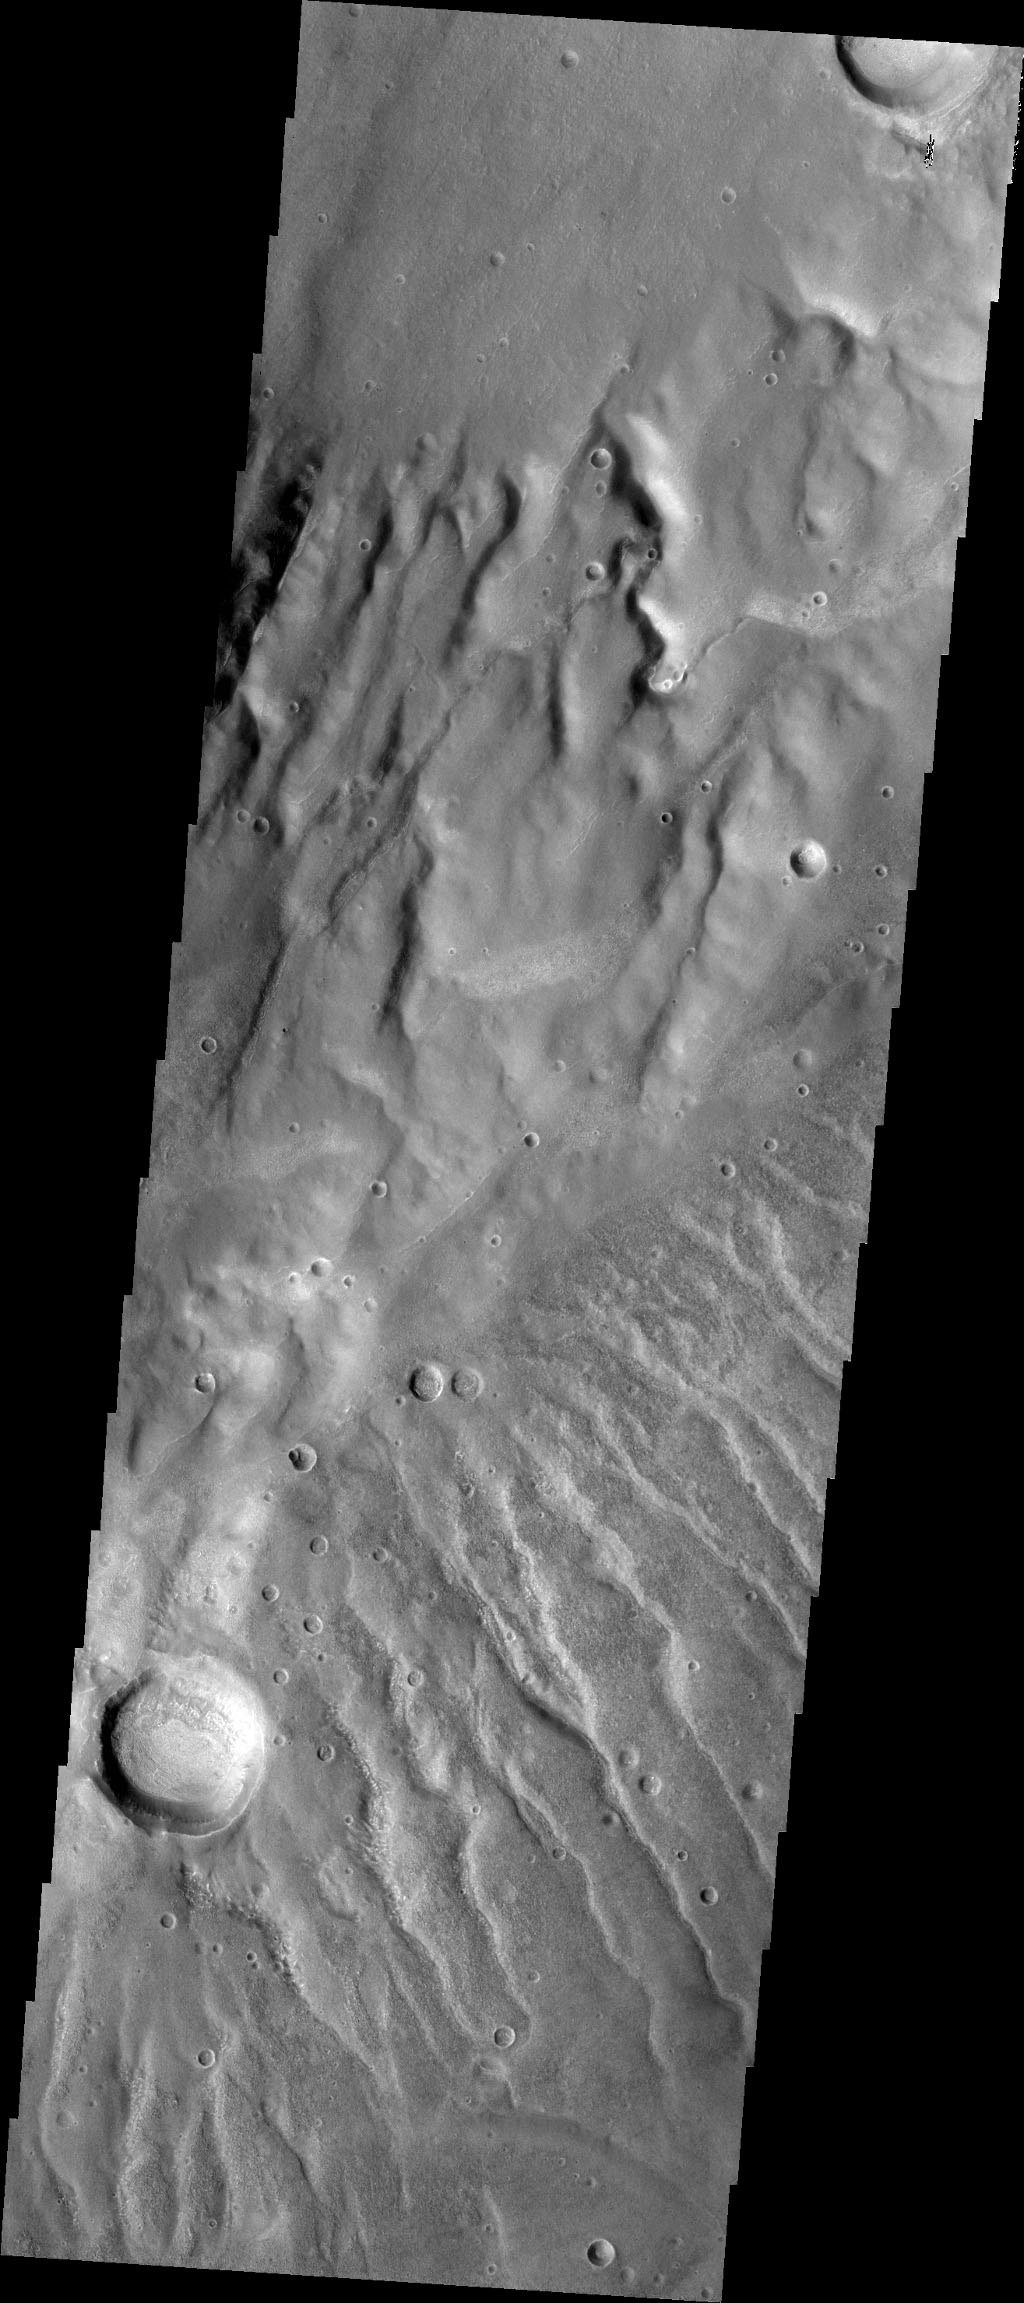 Numerous channels dissect both sides of this high spot south of Solis Planum in this image captured by NASA's 2001 Mars Odyssey spacecraft.